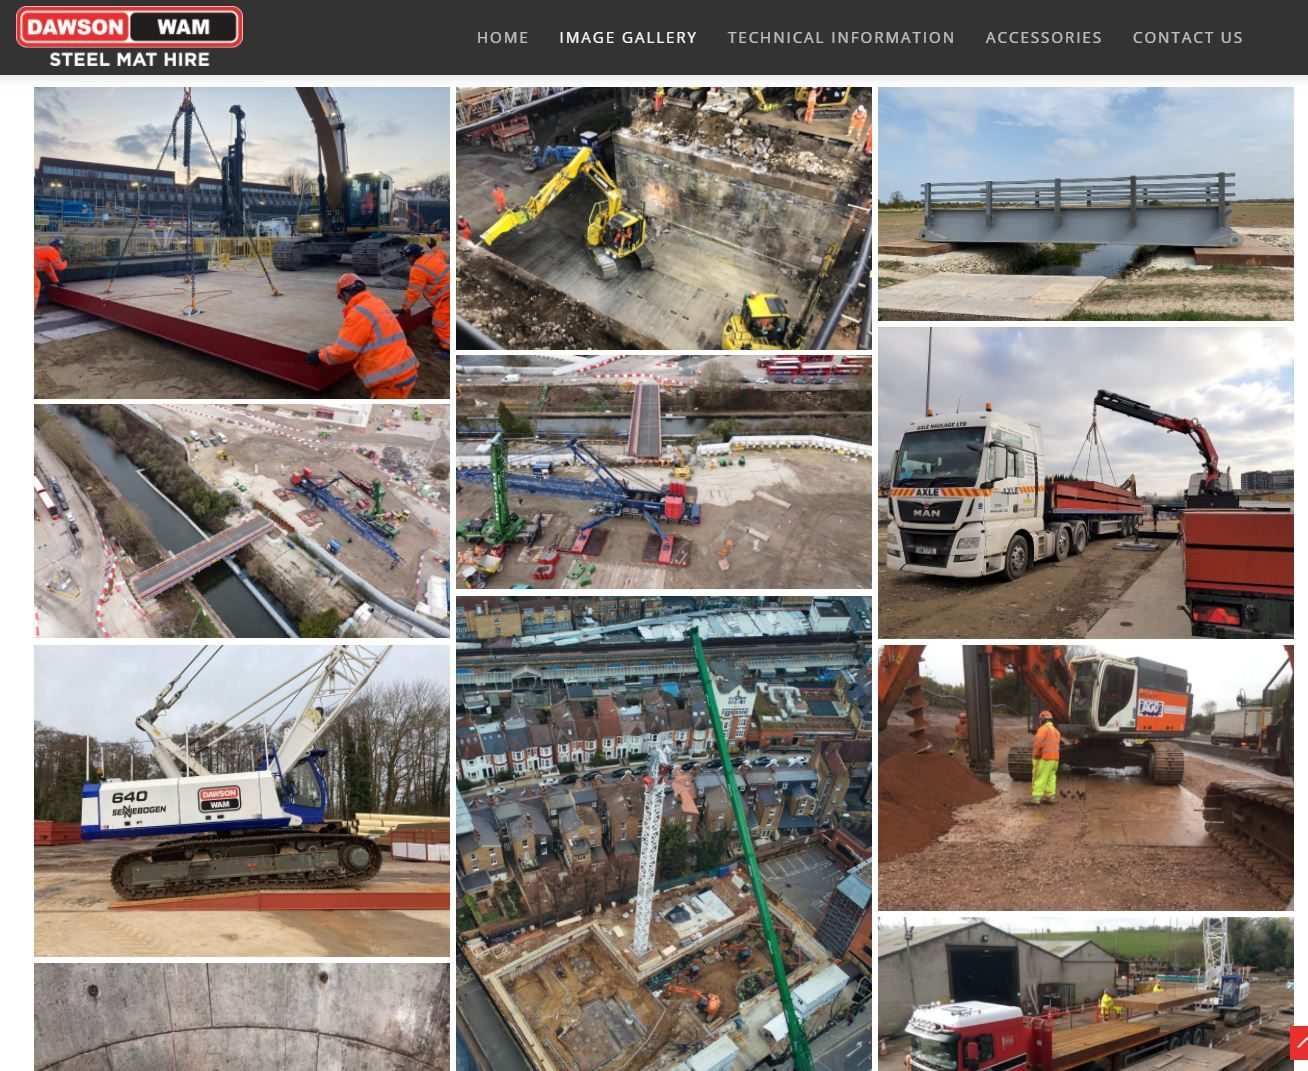 Our NEW Steel Mat Hire Website is now LIVE!